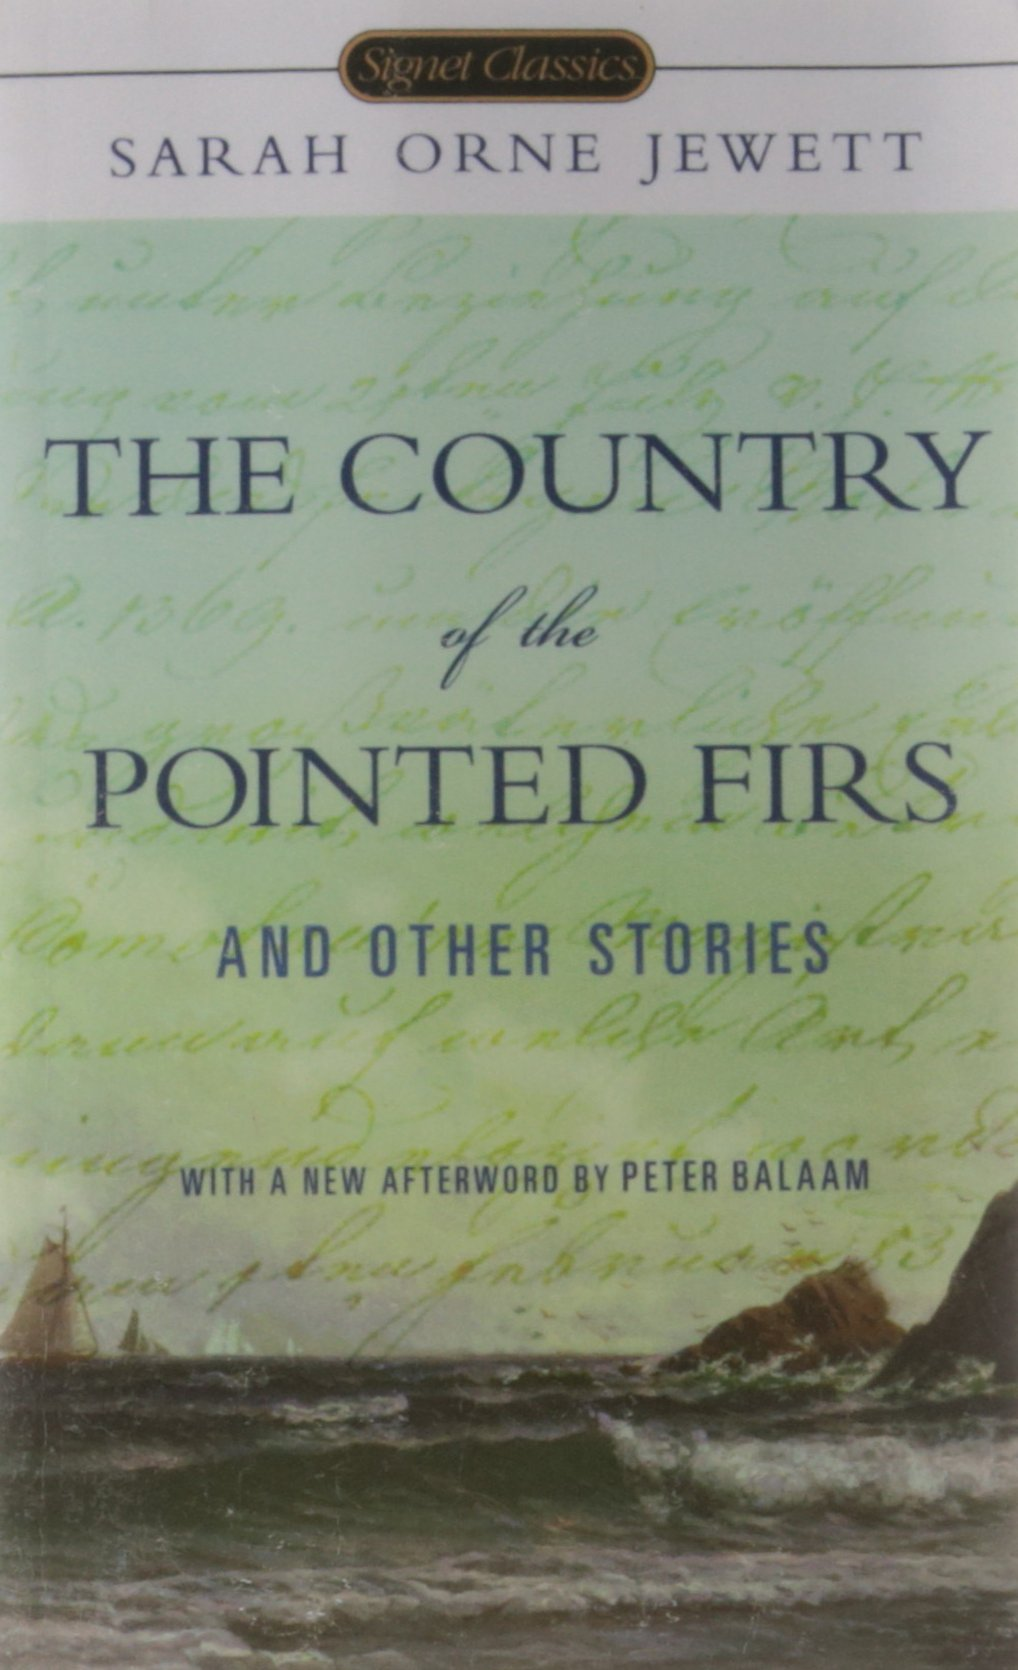 The Country Of The Pointed Firs And Other Stories (signet Classics): Sarah  Orne Jewett, Anita Shreve, Peter Balaam: 9780451531445: Amazon: Books